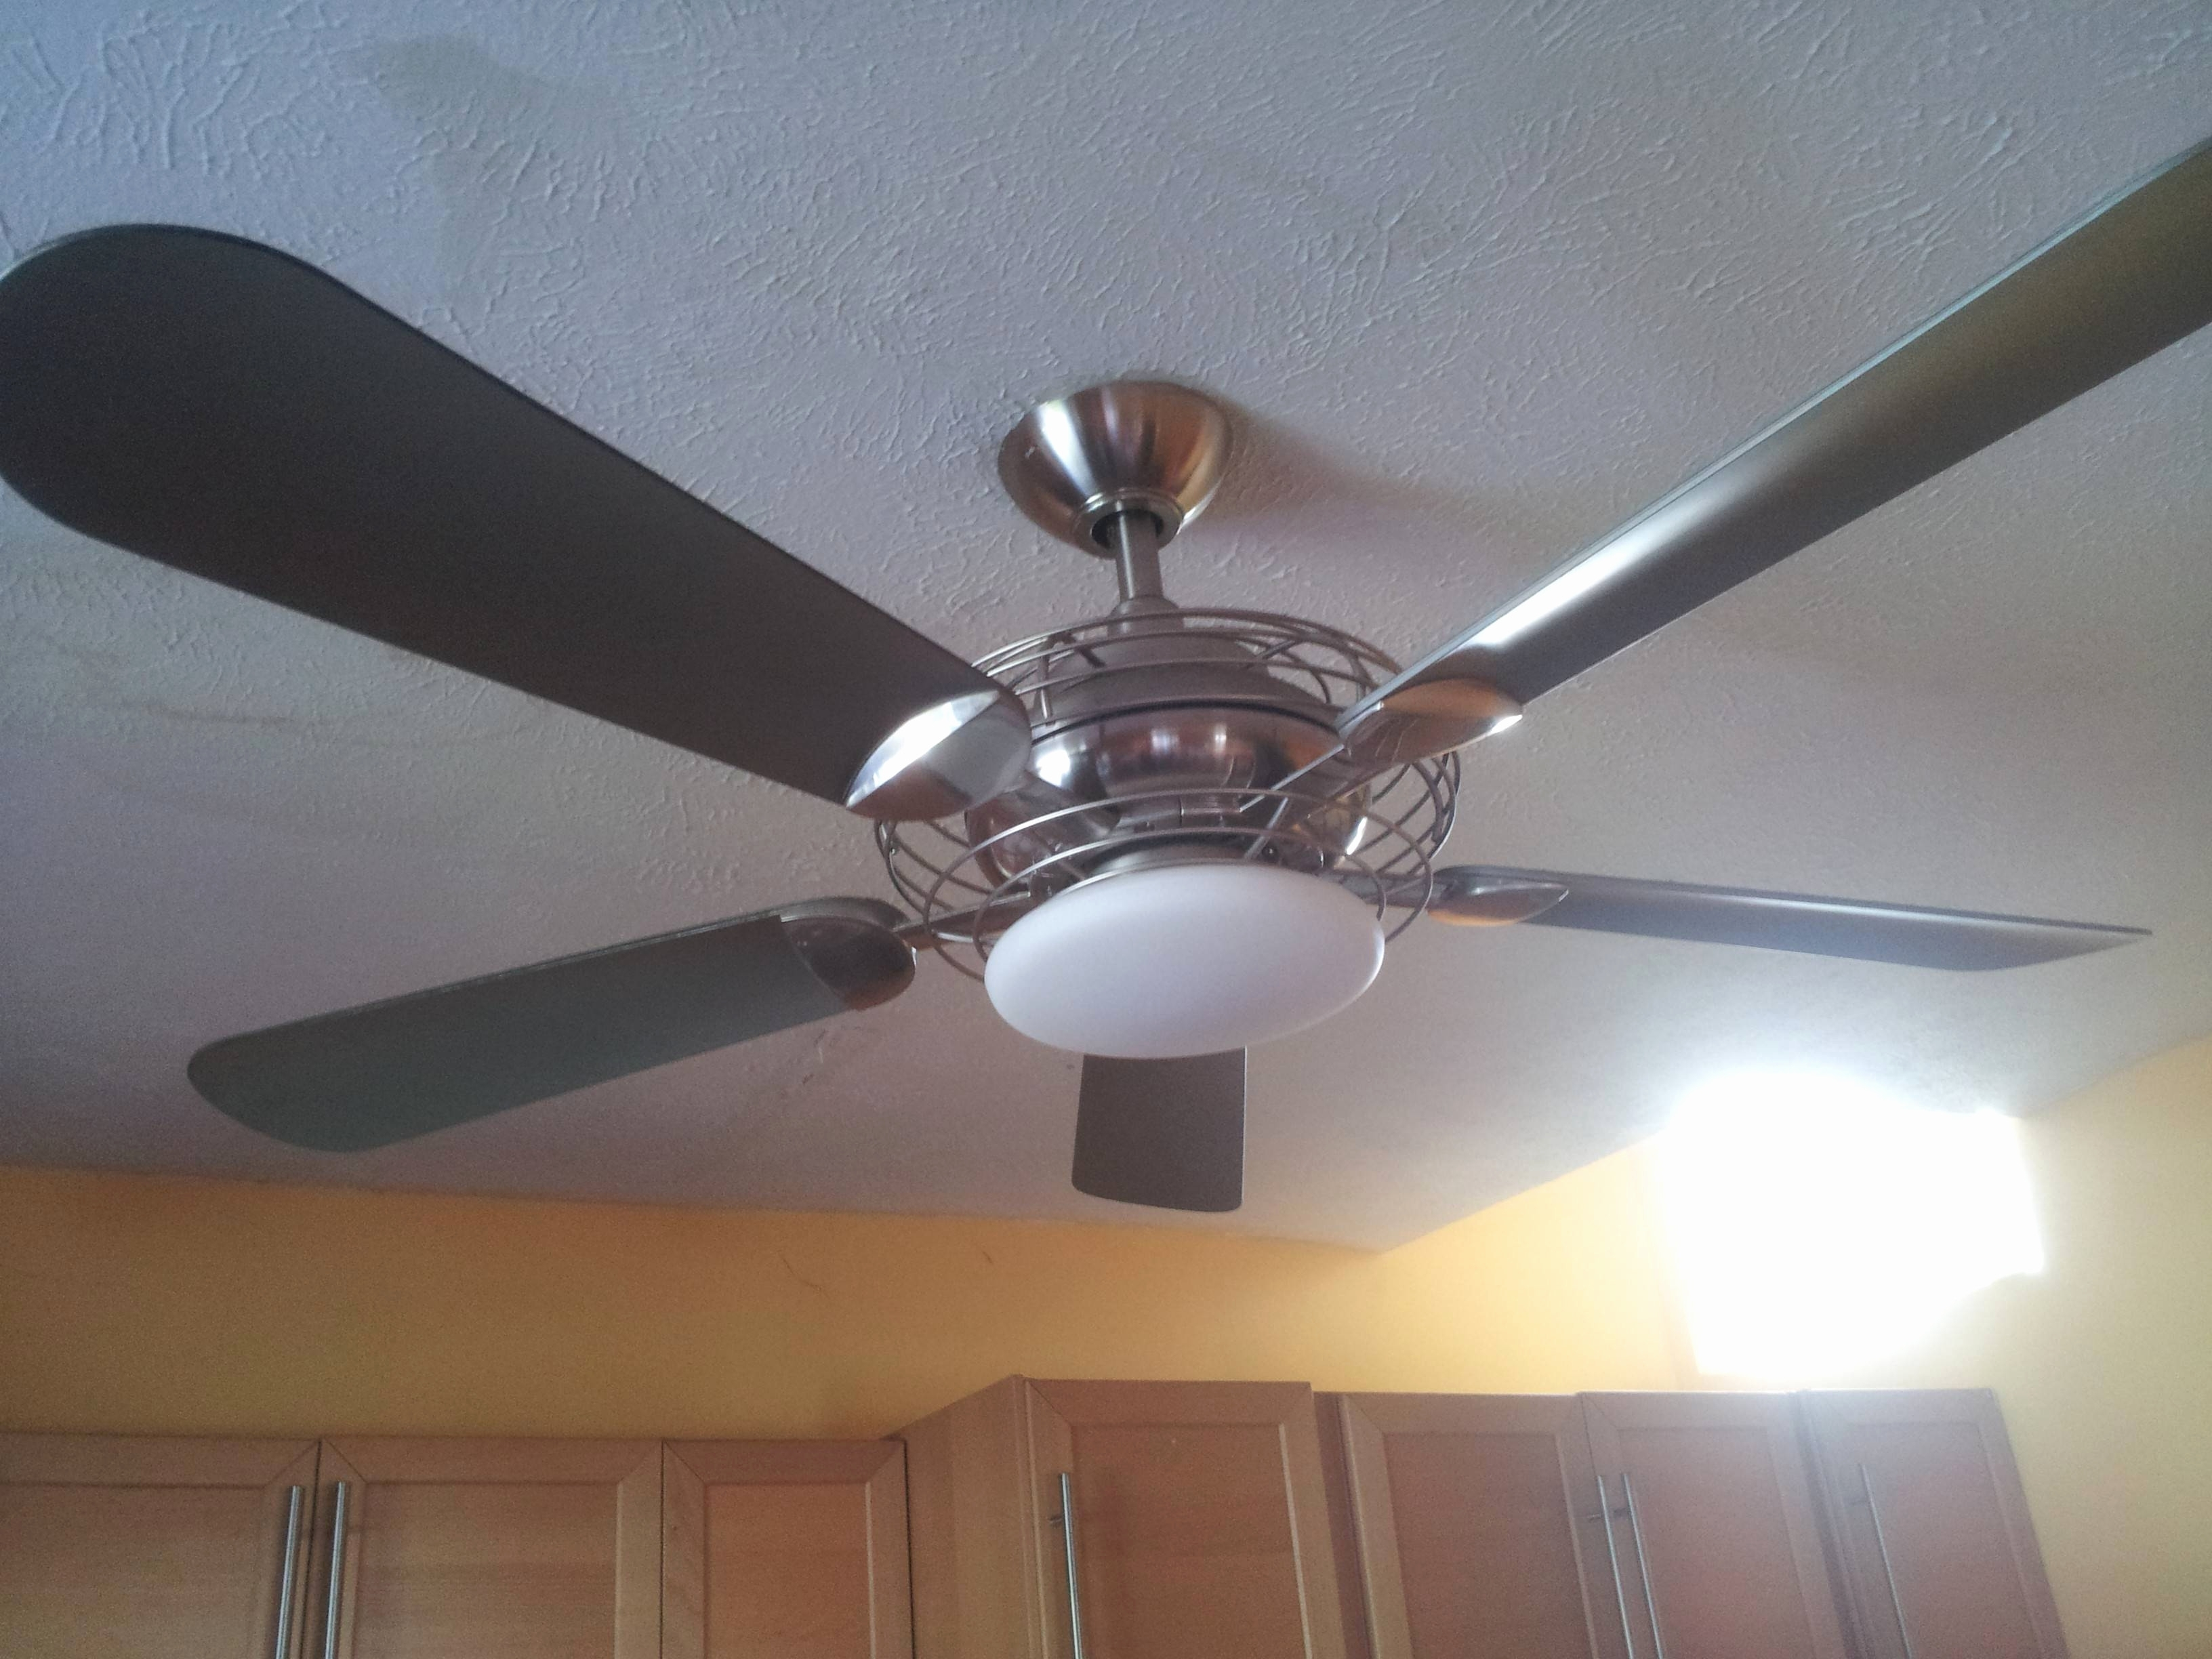 36 Inch Flush Mount Ceiling Fans Lovely Archive Of May 2018 Blue Regarding Newest 36 Inch Outdoor Ceiling Fans With Light Flush Mount (Gallery 19 of 20)